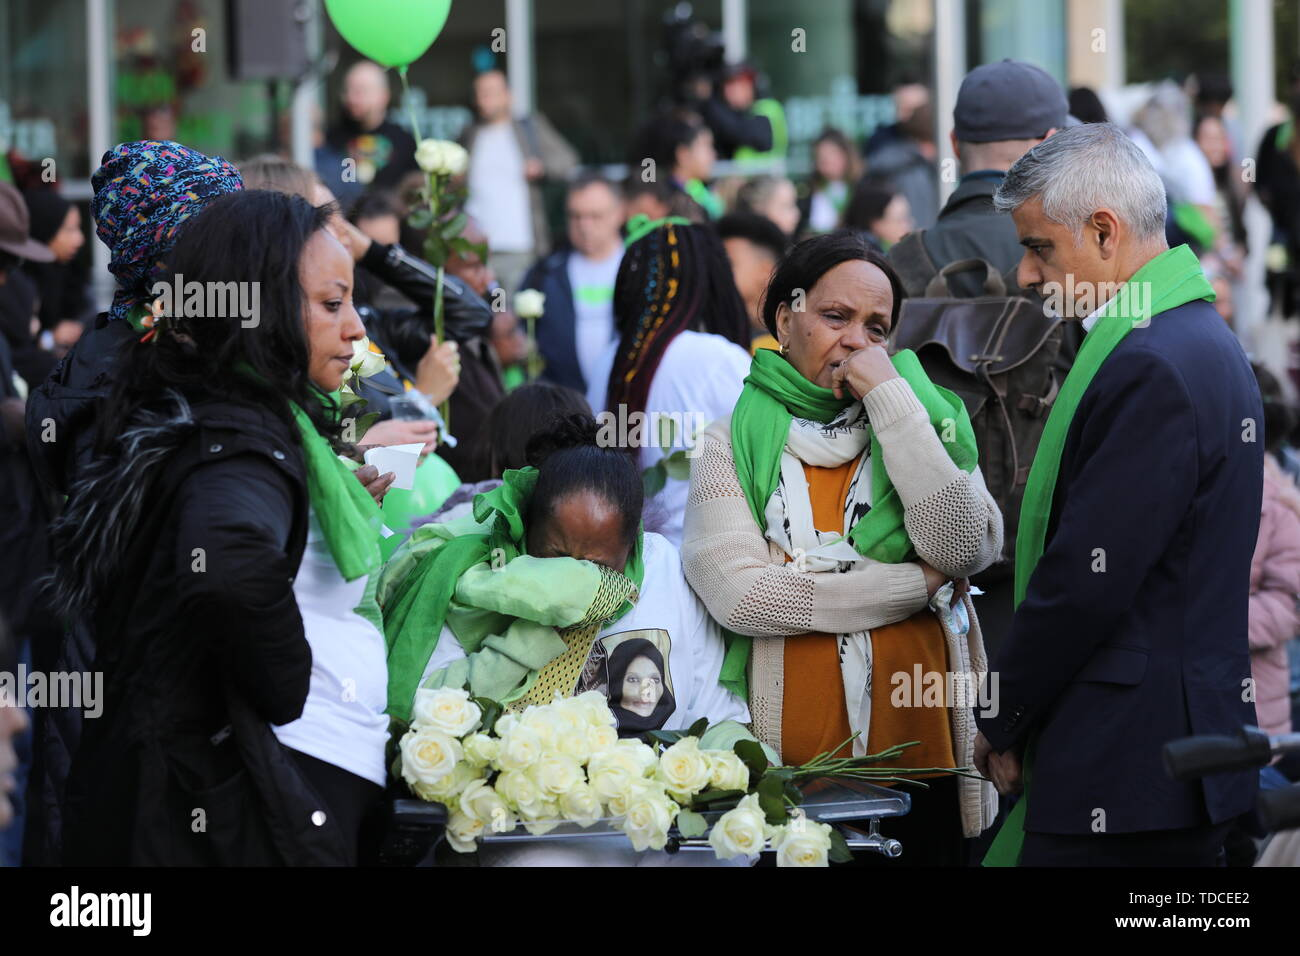 Mayor of London Sadiq Kahn arrives outside Grenfell Tower, London, to meet family and friends ahead of the wreath laying ceremony, which marks the two-year anniversary of the tower block fire in memory of the 72 people who lost their lives. - Stock Image